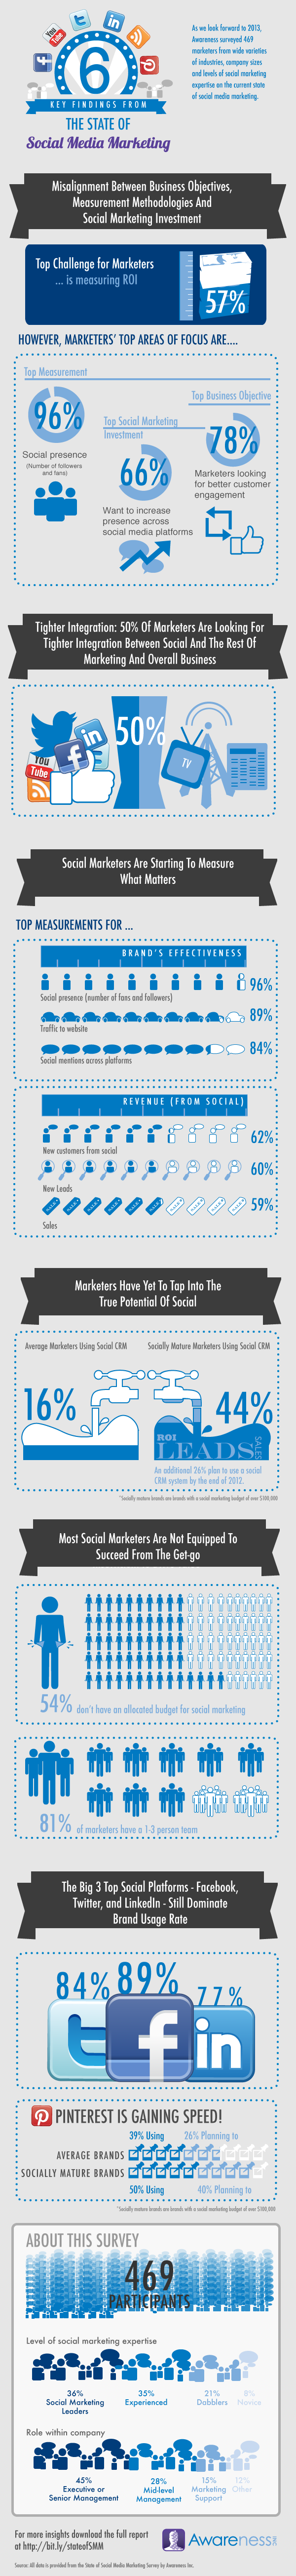 The State Of Social Marketing Reports  Major Findings  InDepth